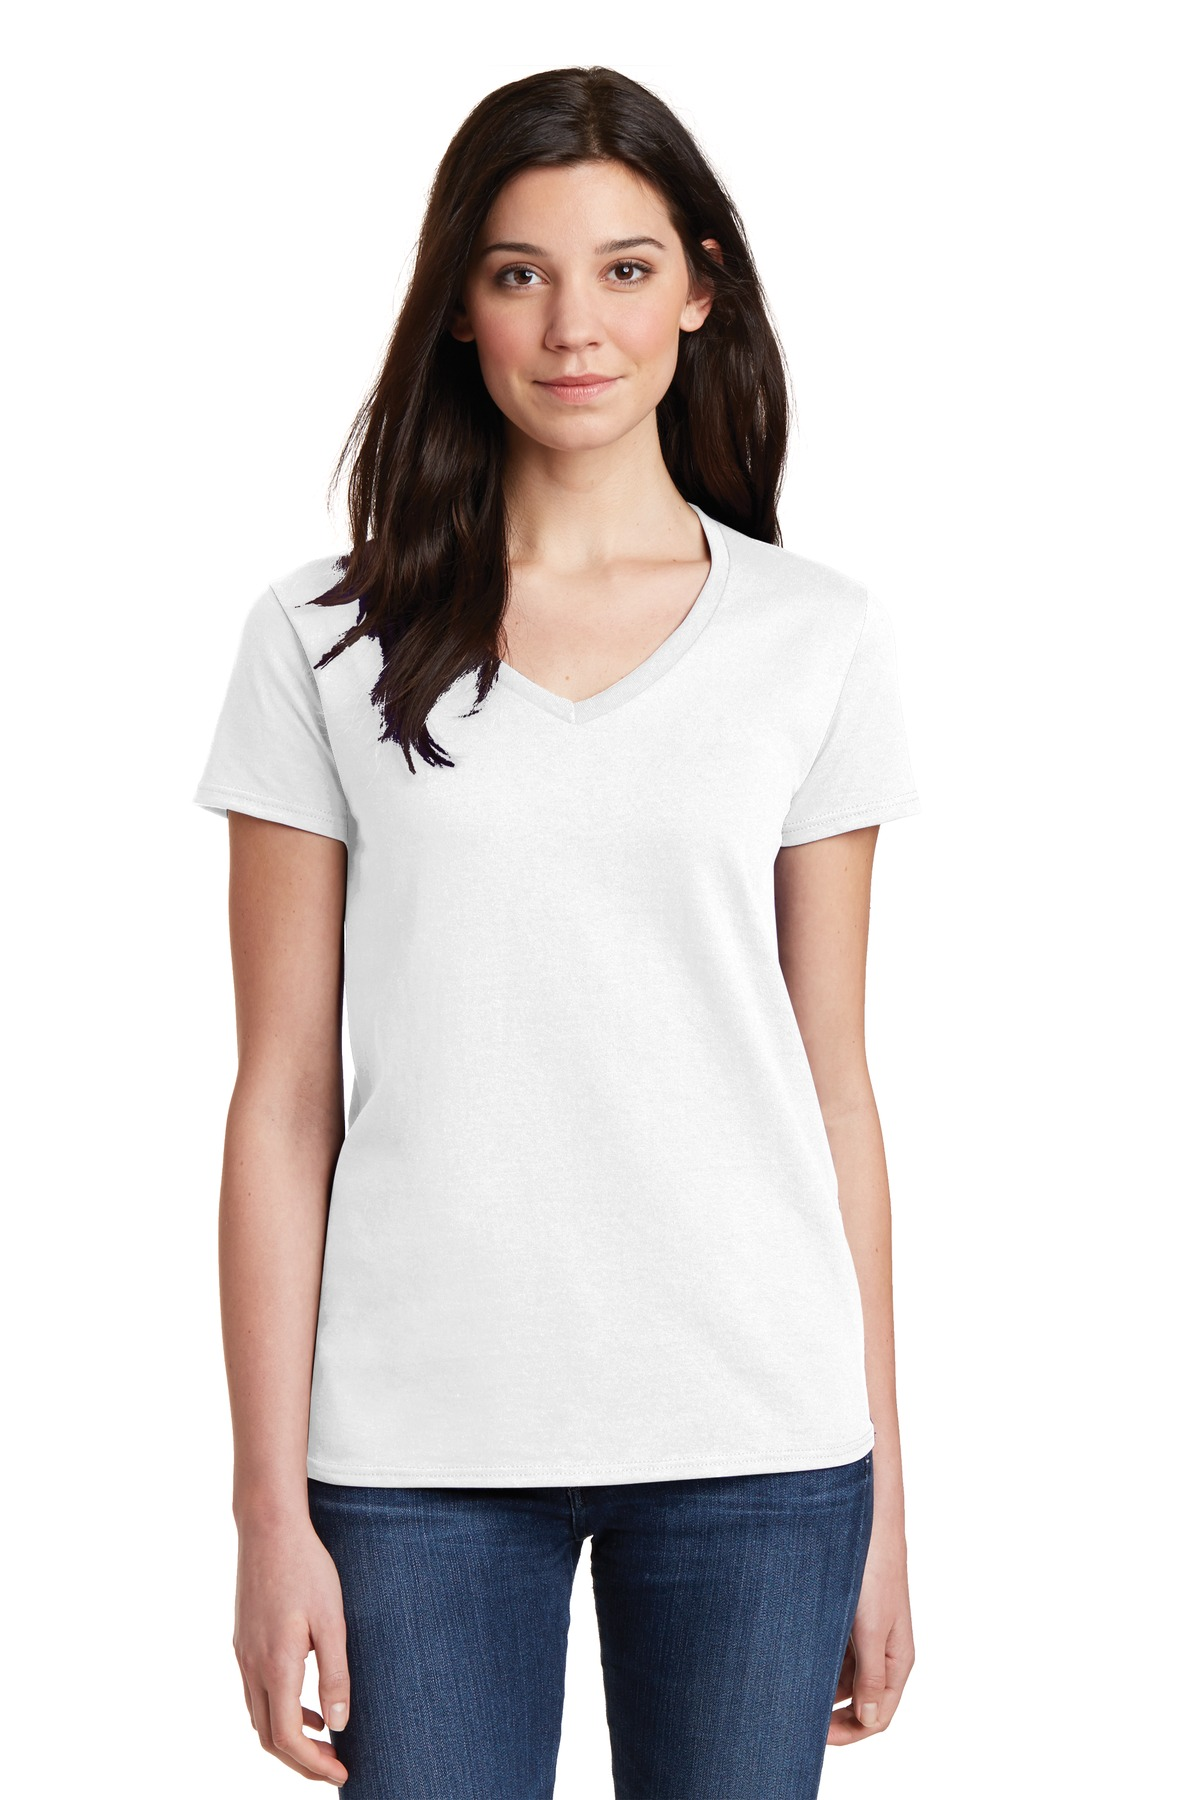 Whether you prefer our silky-soft Pima cotton Women's tees, the cling-free fit of our Double L Rib-Knit Tees, the easy-going comfort of our Women's Saturday T-Shirts or our long-wearing Carefree Unshrinkables, you'll find it here.